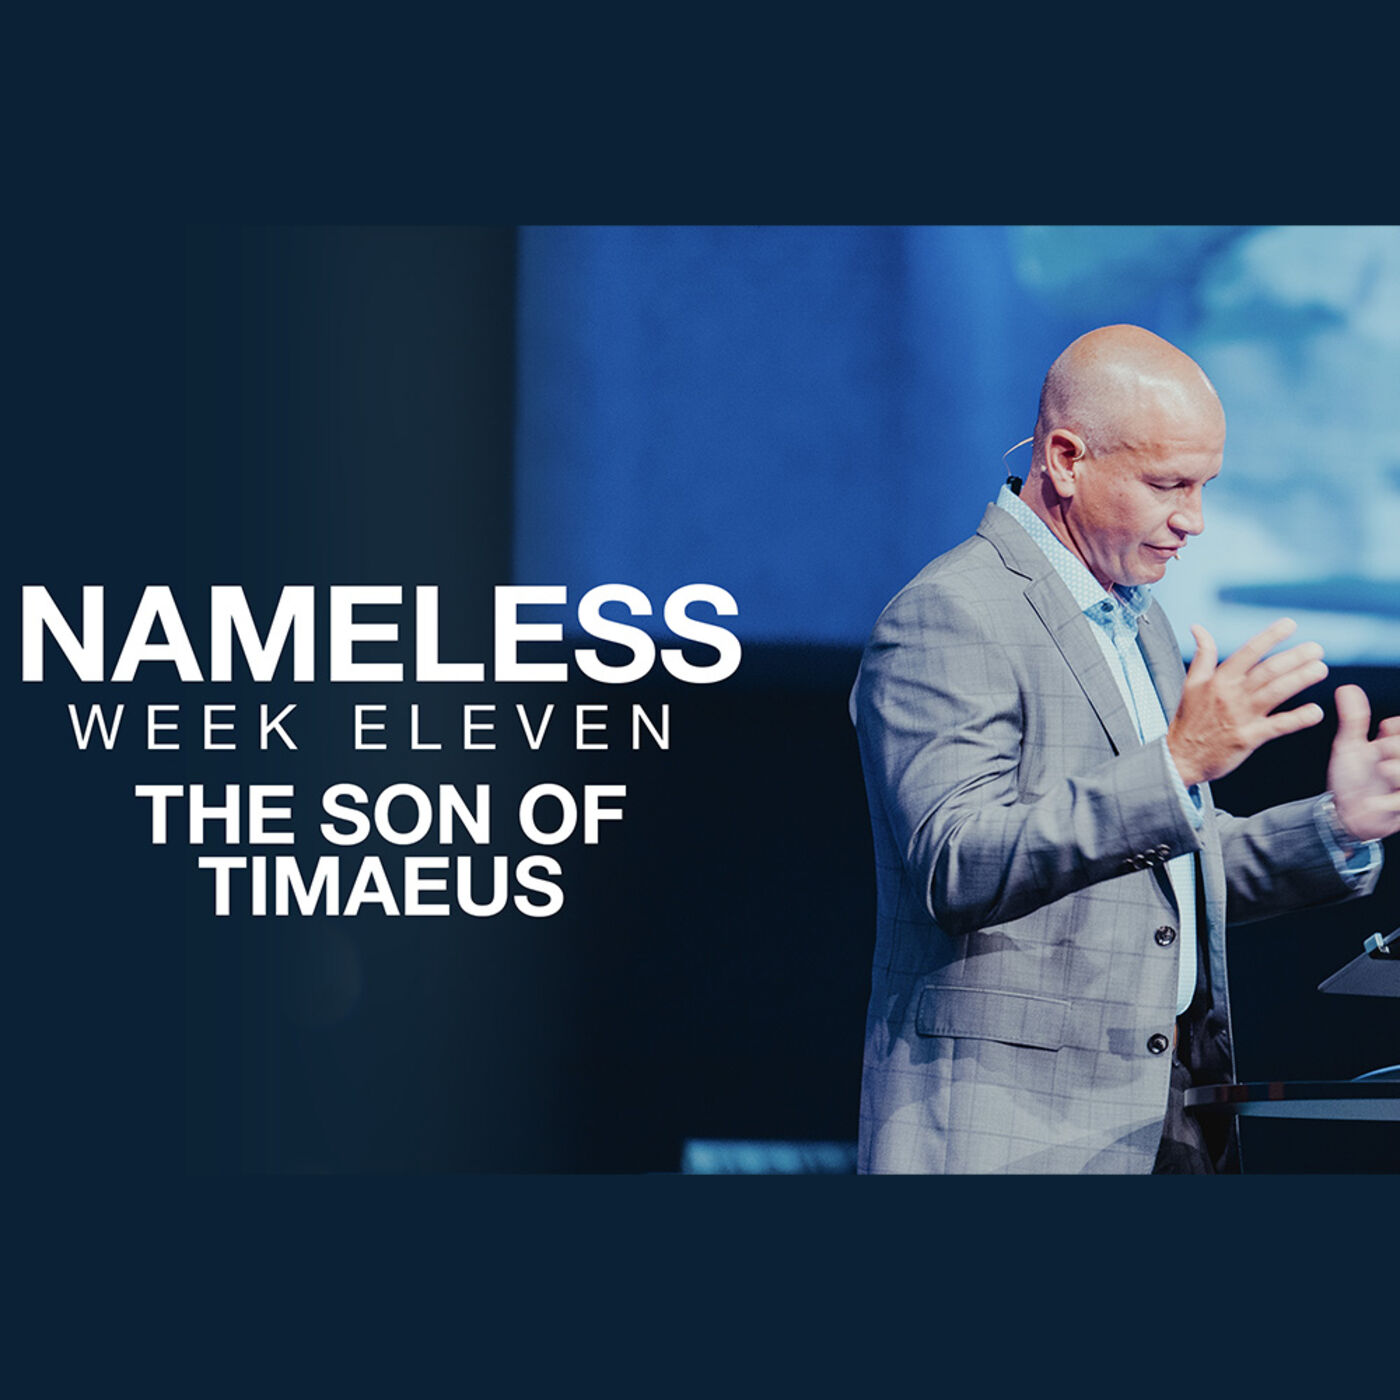 Nameless Week Eleven // The Son of Timaeus